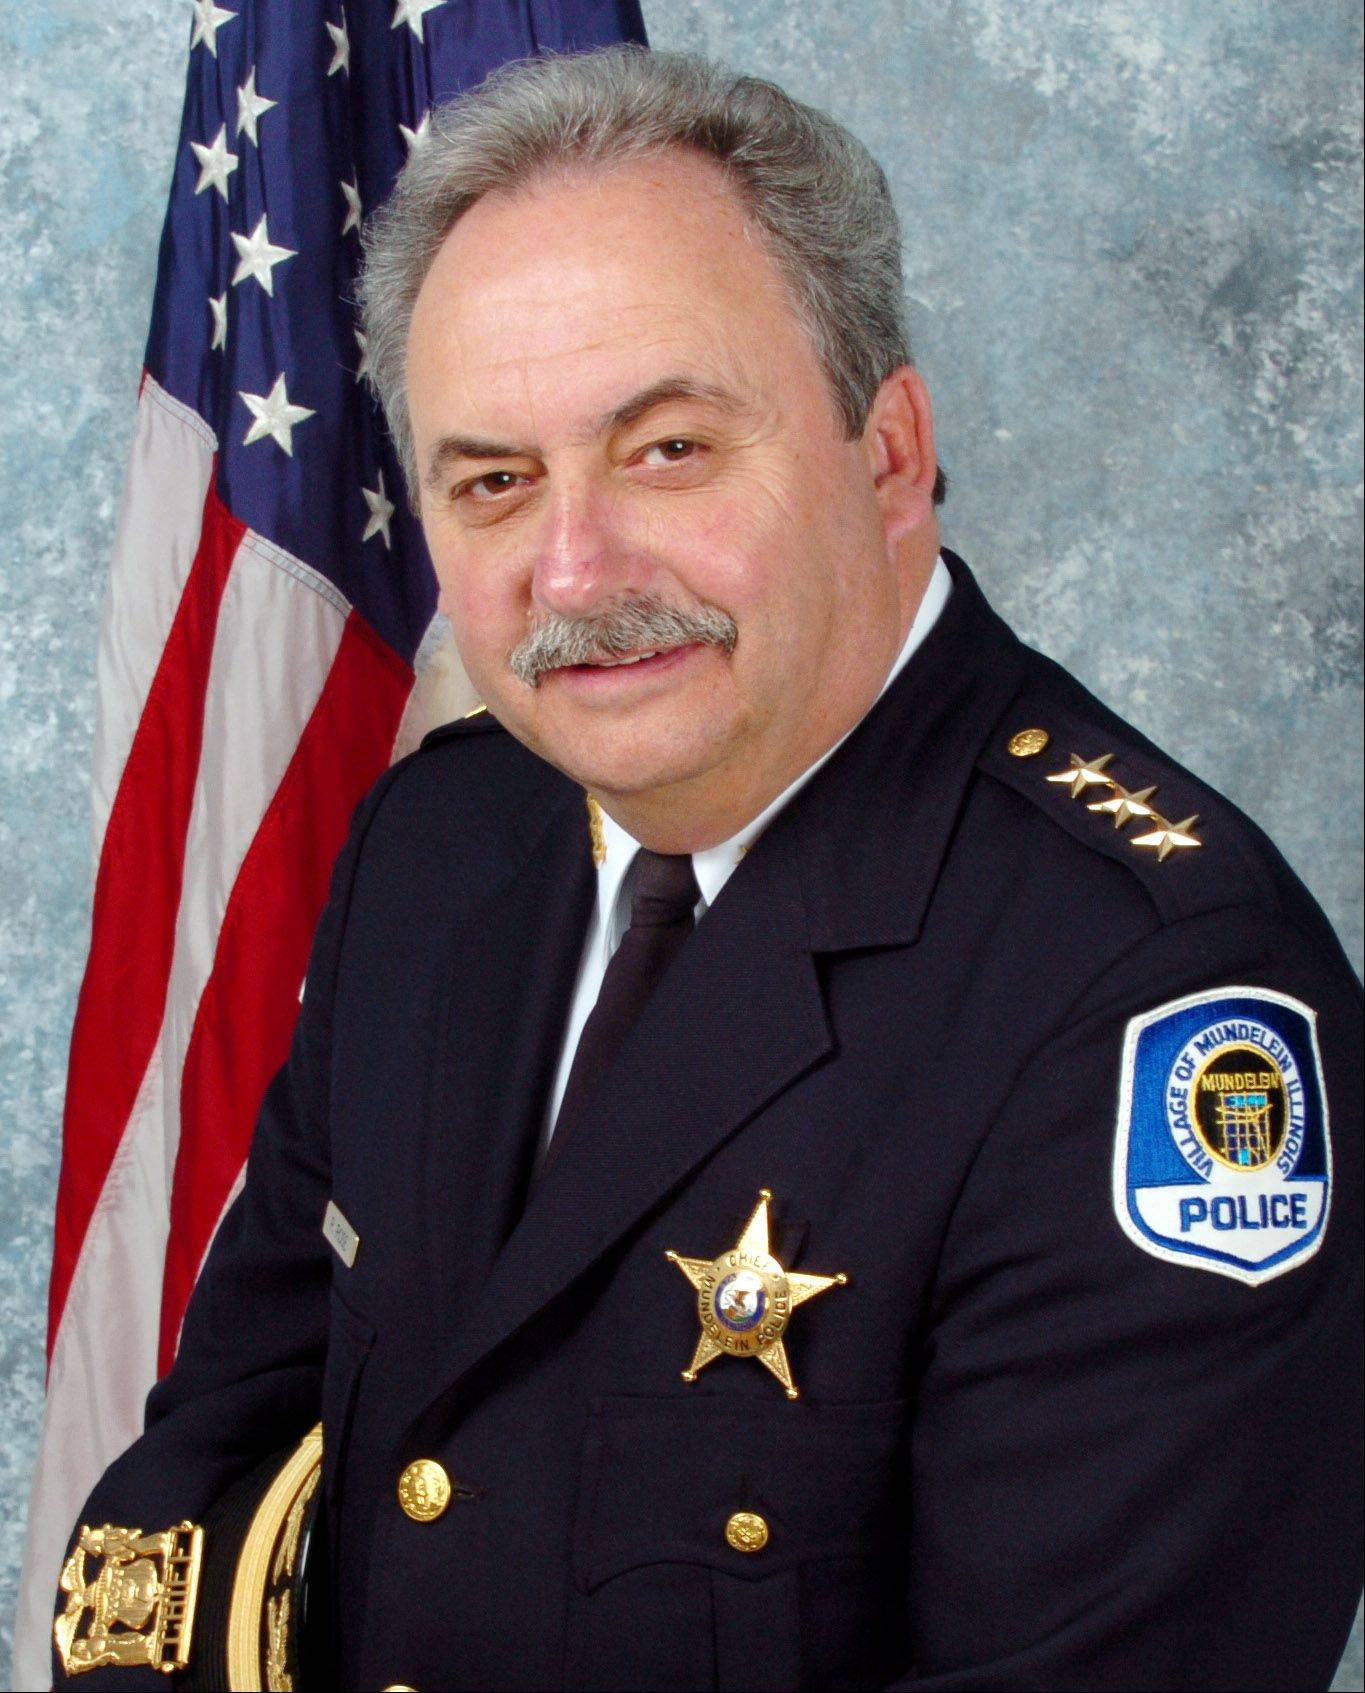 Mundelein Police Chief Ray Rose.